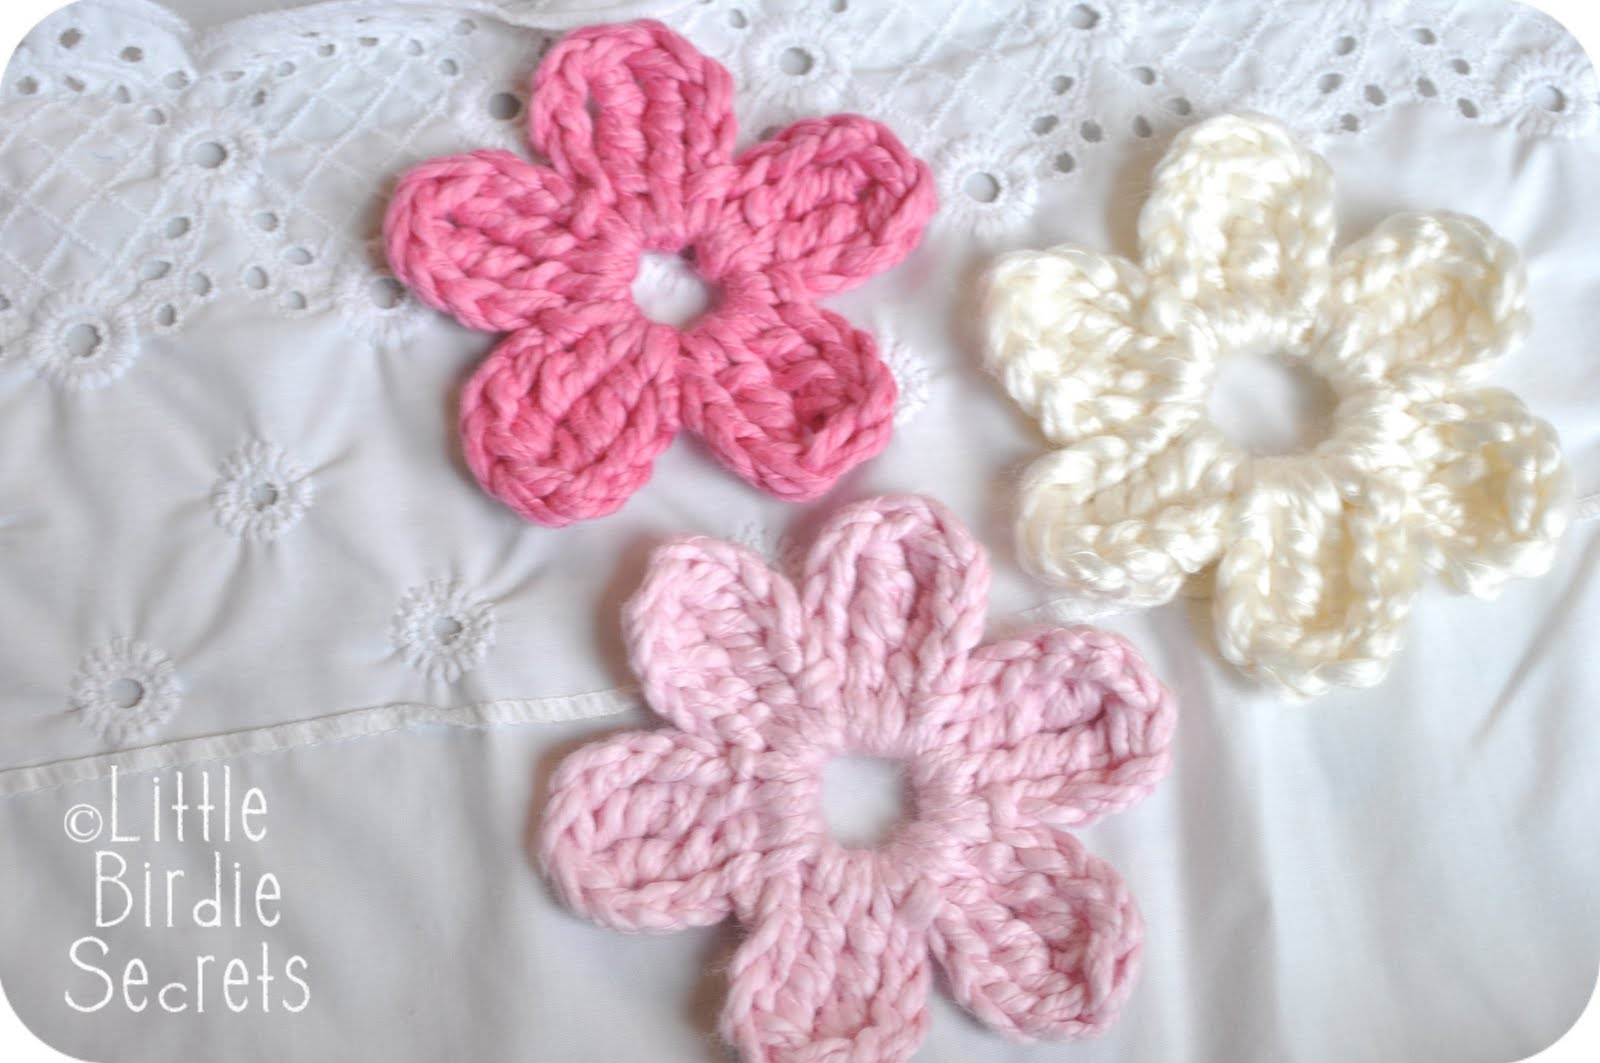 Crochet Patterns Com : baby hat and bootie patterns in the shop {plus a free flower pattern ...